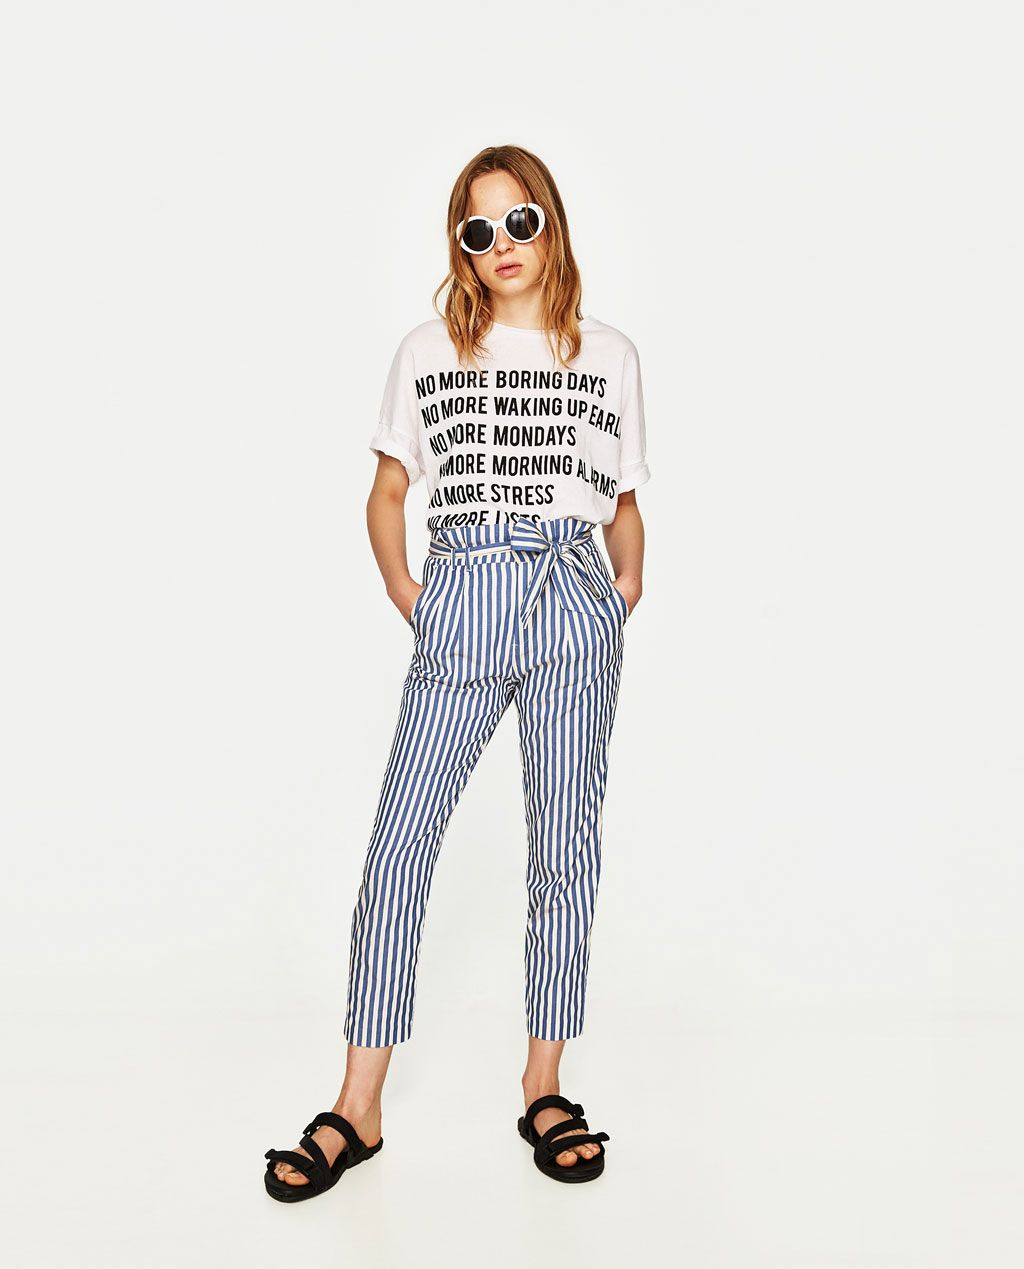 5a2929a0f51 STRIPED TROUSERS-TROUSERS-WOMAN-COLLECTION AW/17 | ZARA United States